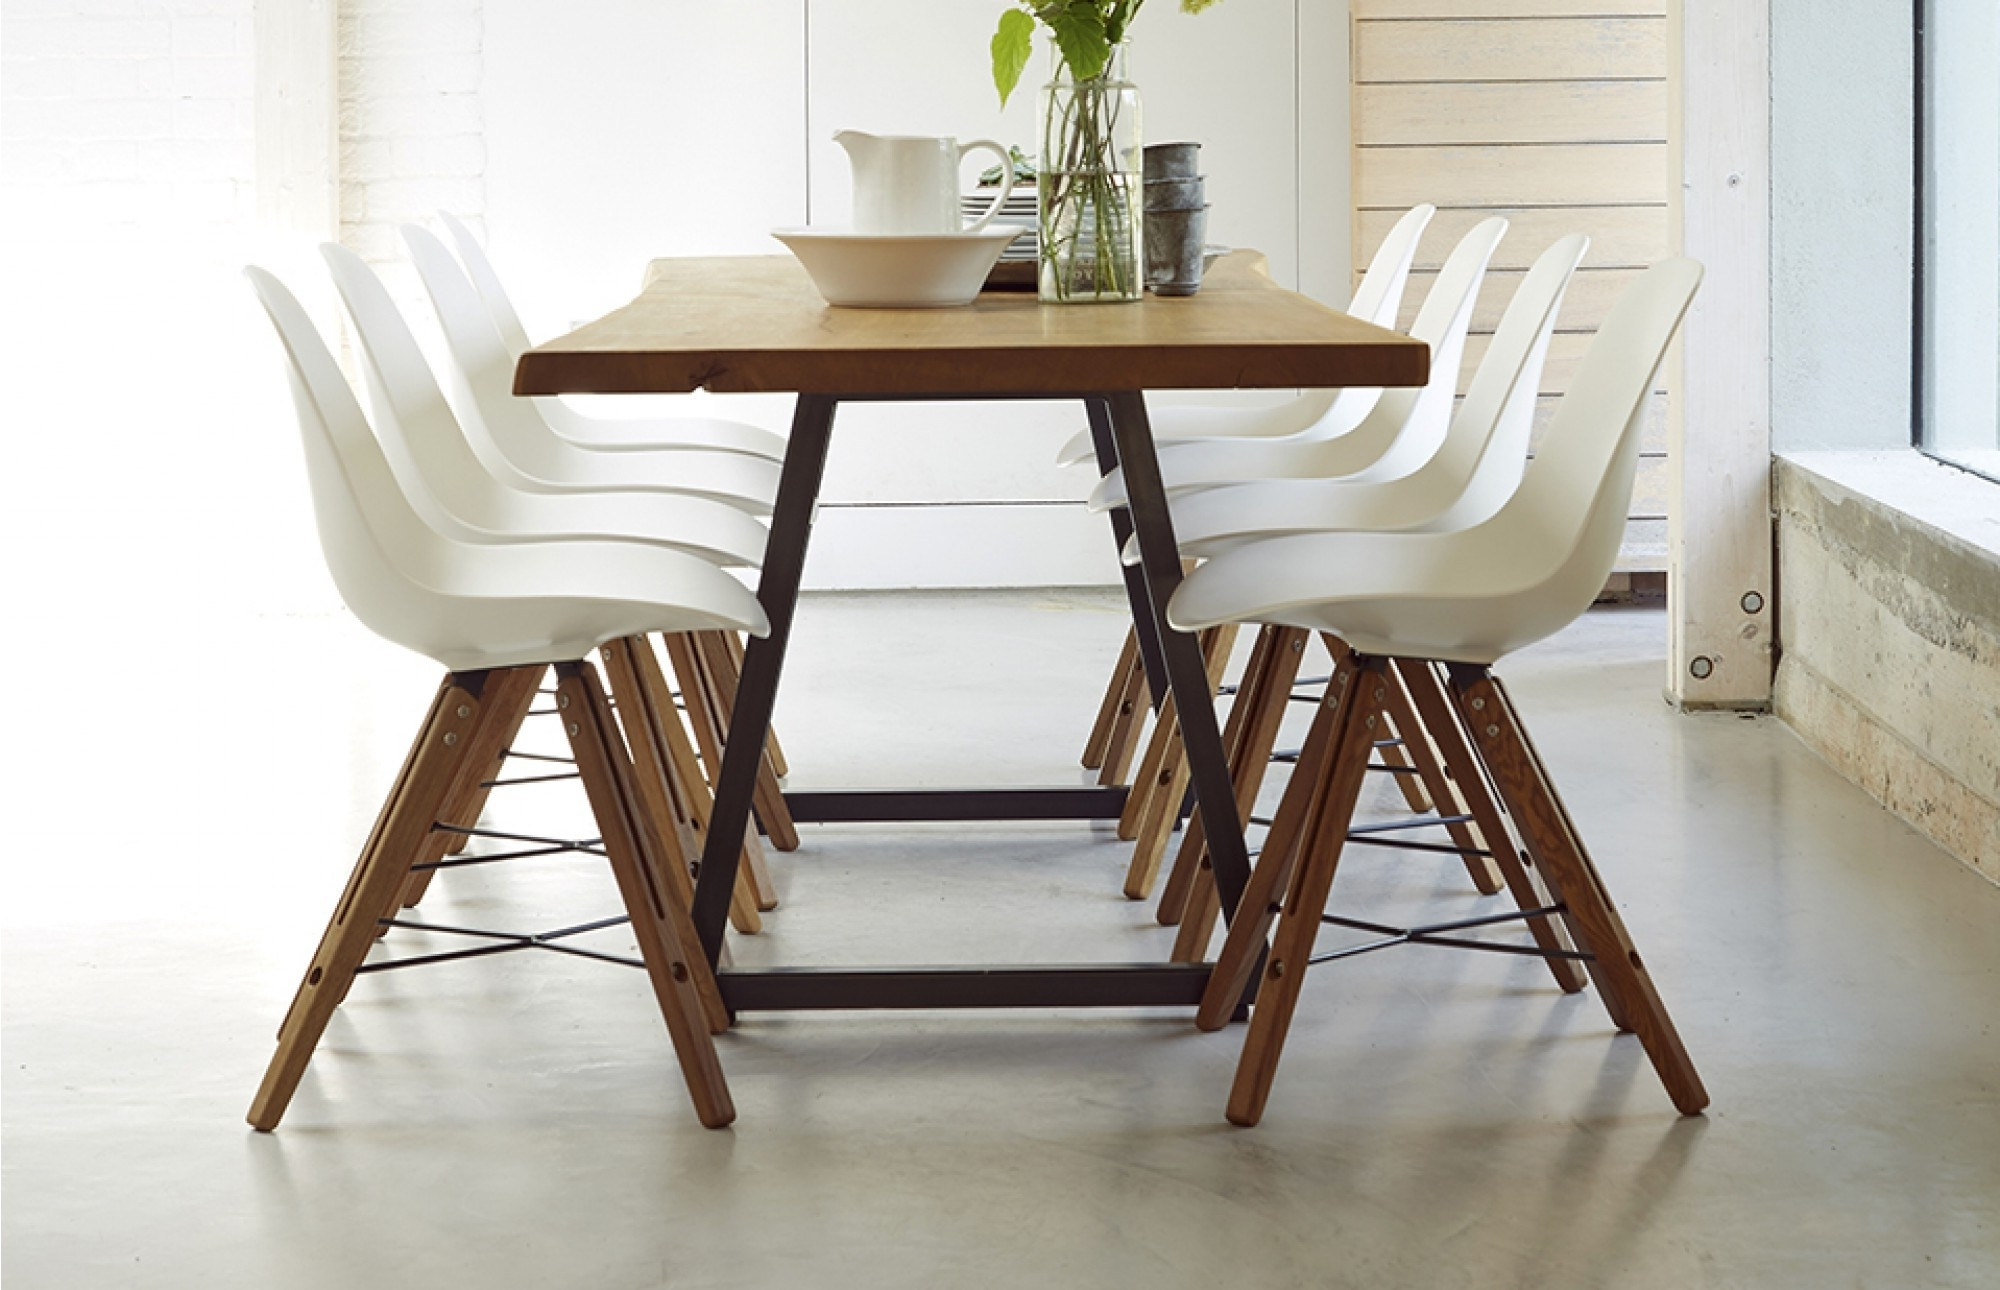 Most Recently Released Dining Table Sets 8 Chairs Elegant Luxury Contemporary Tables And 22 Pertaining To Modern Dining Table And Chairs (View 20 of 25)